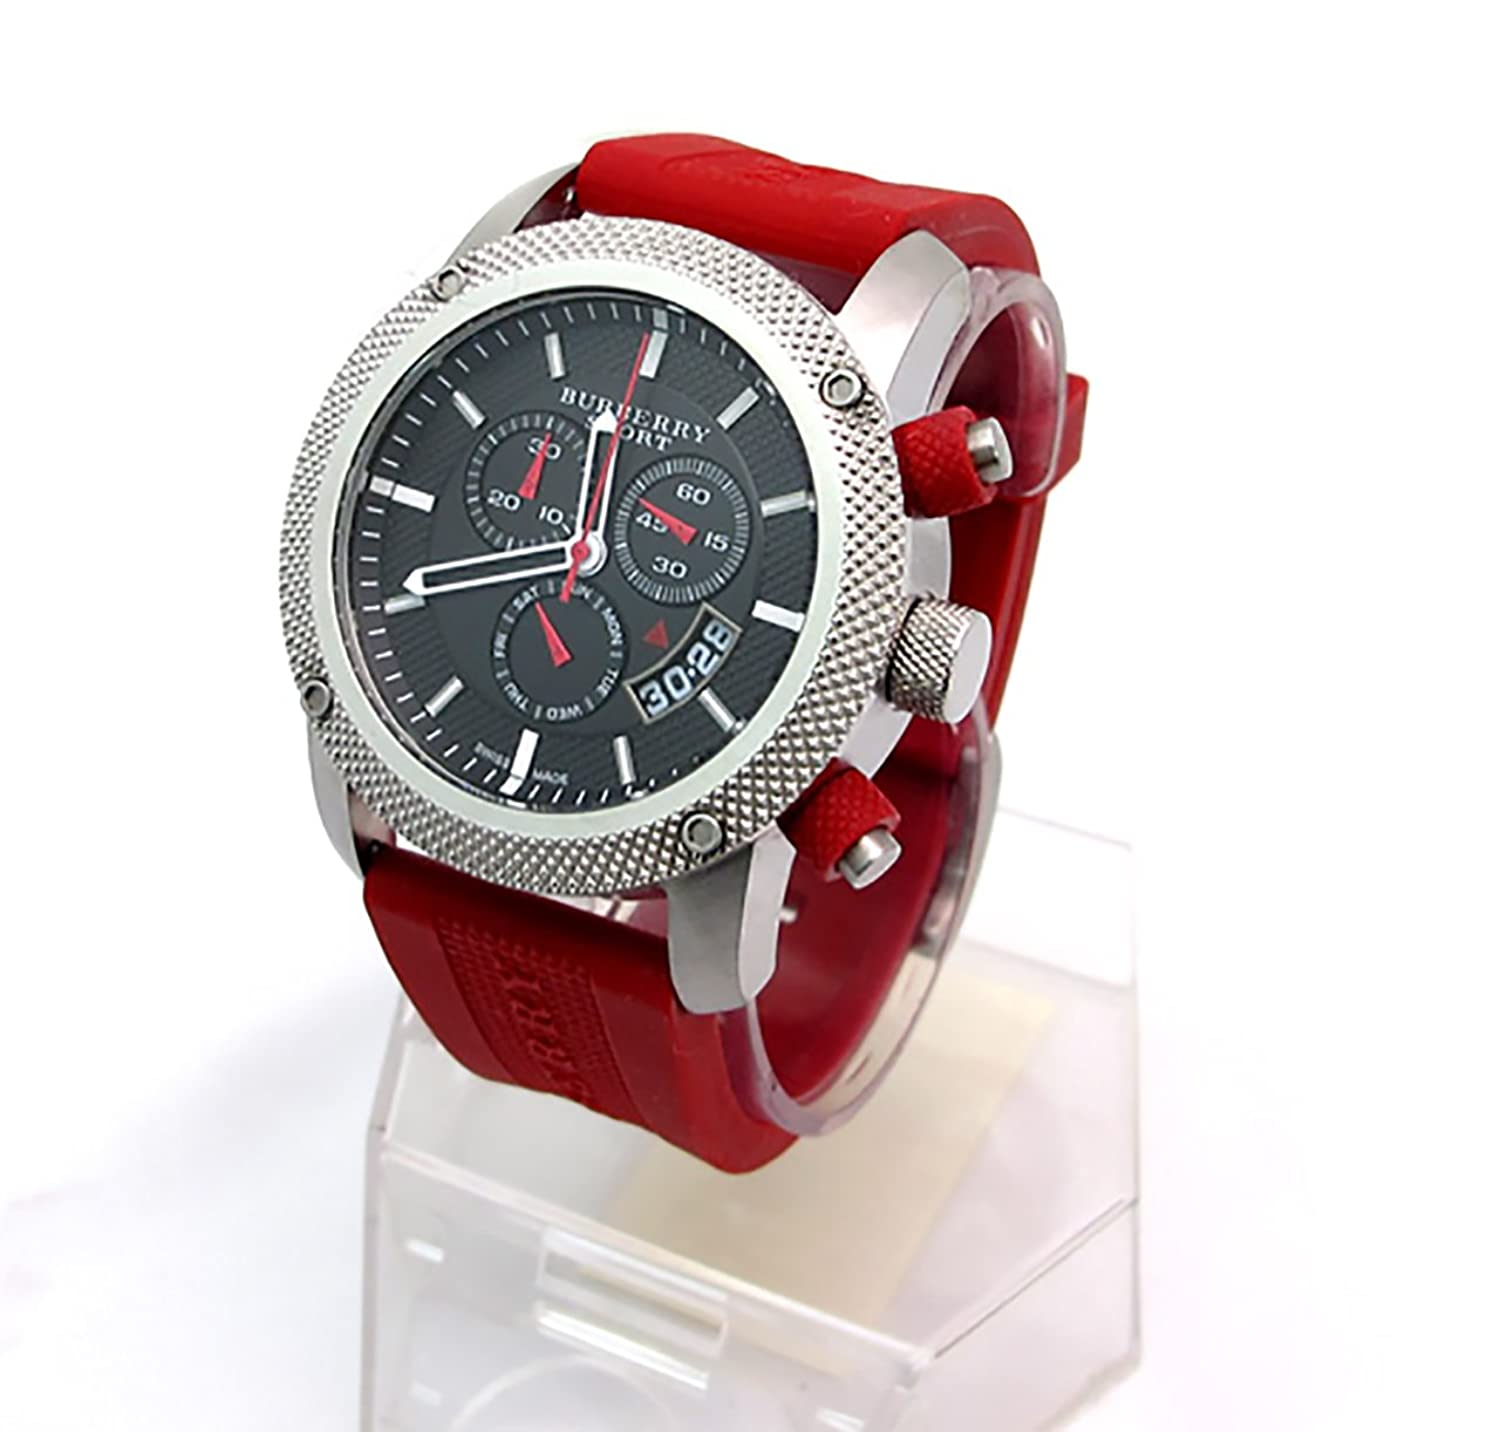 latest fashion red fashionpenta watches mens penta men pentafashionwatch